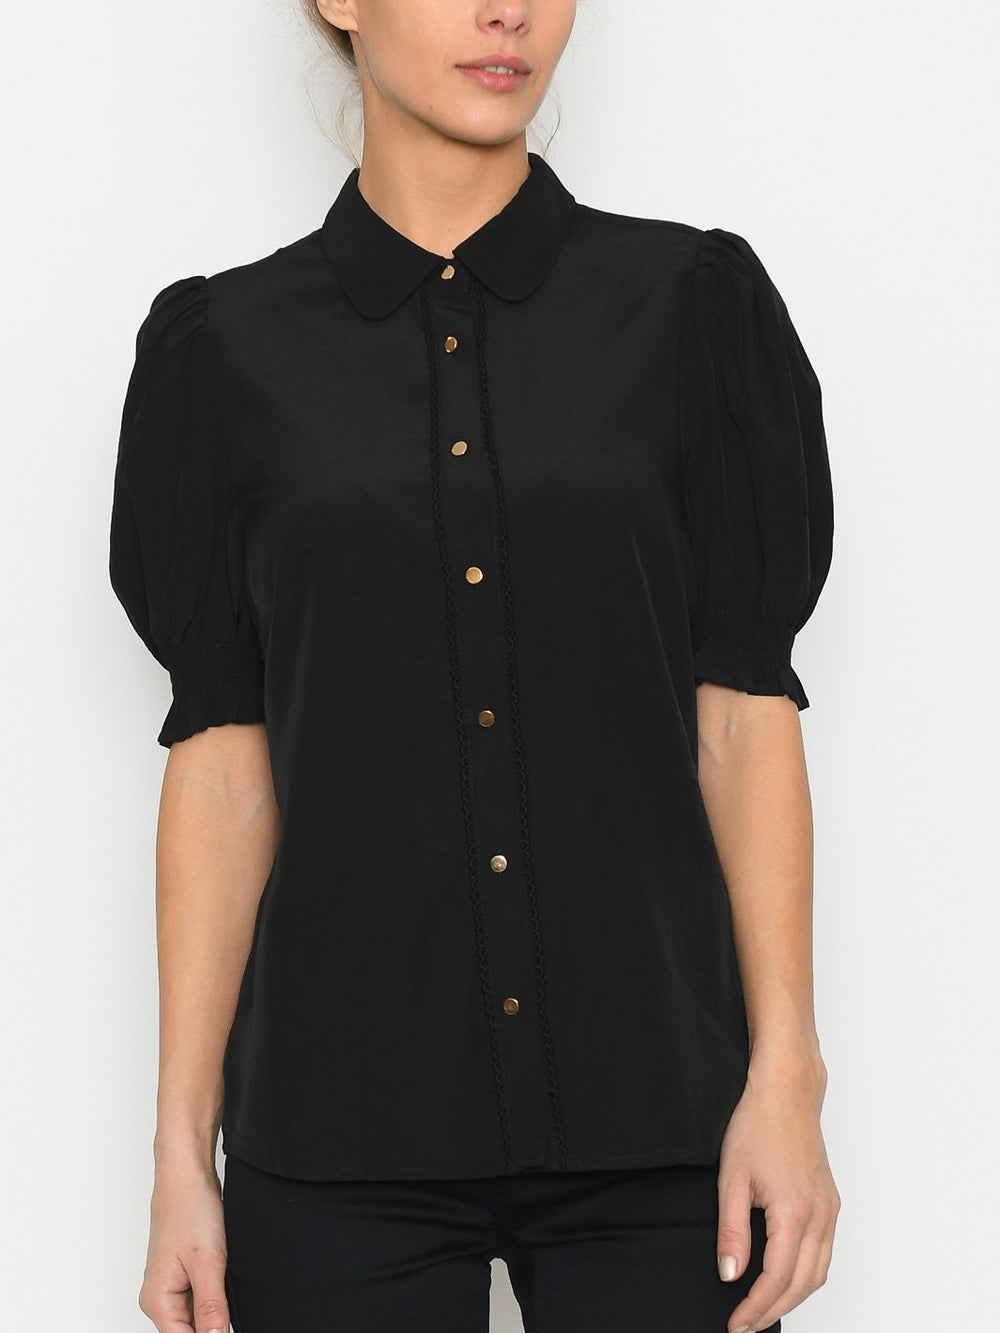 Culture CUasmine SS blouse black - Online-Mode